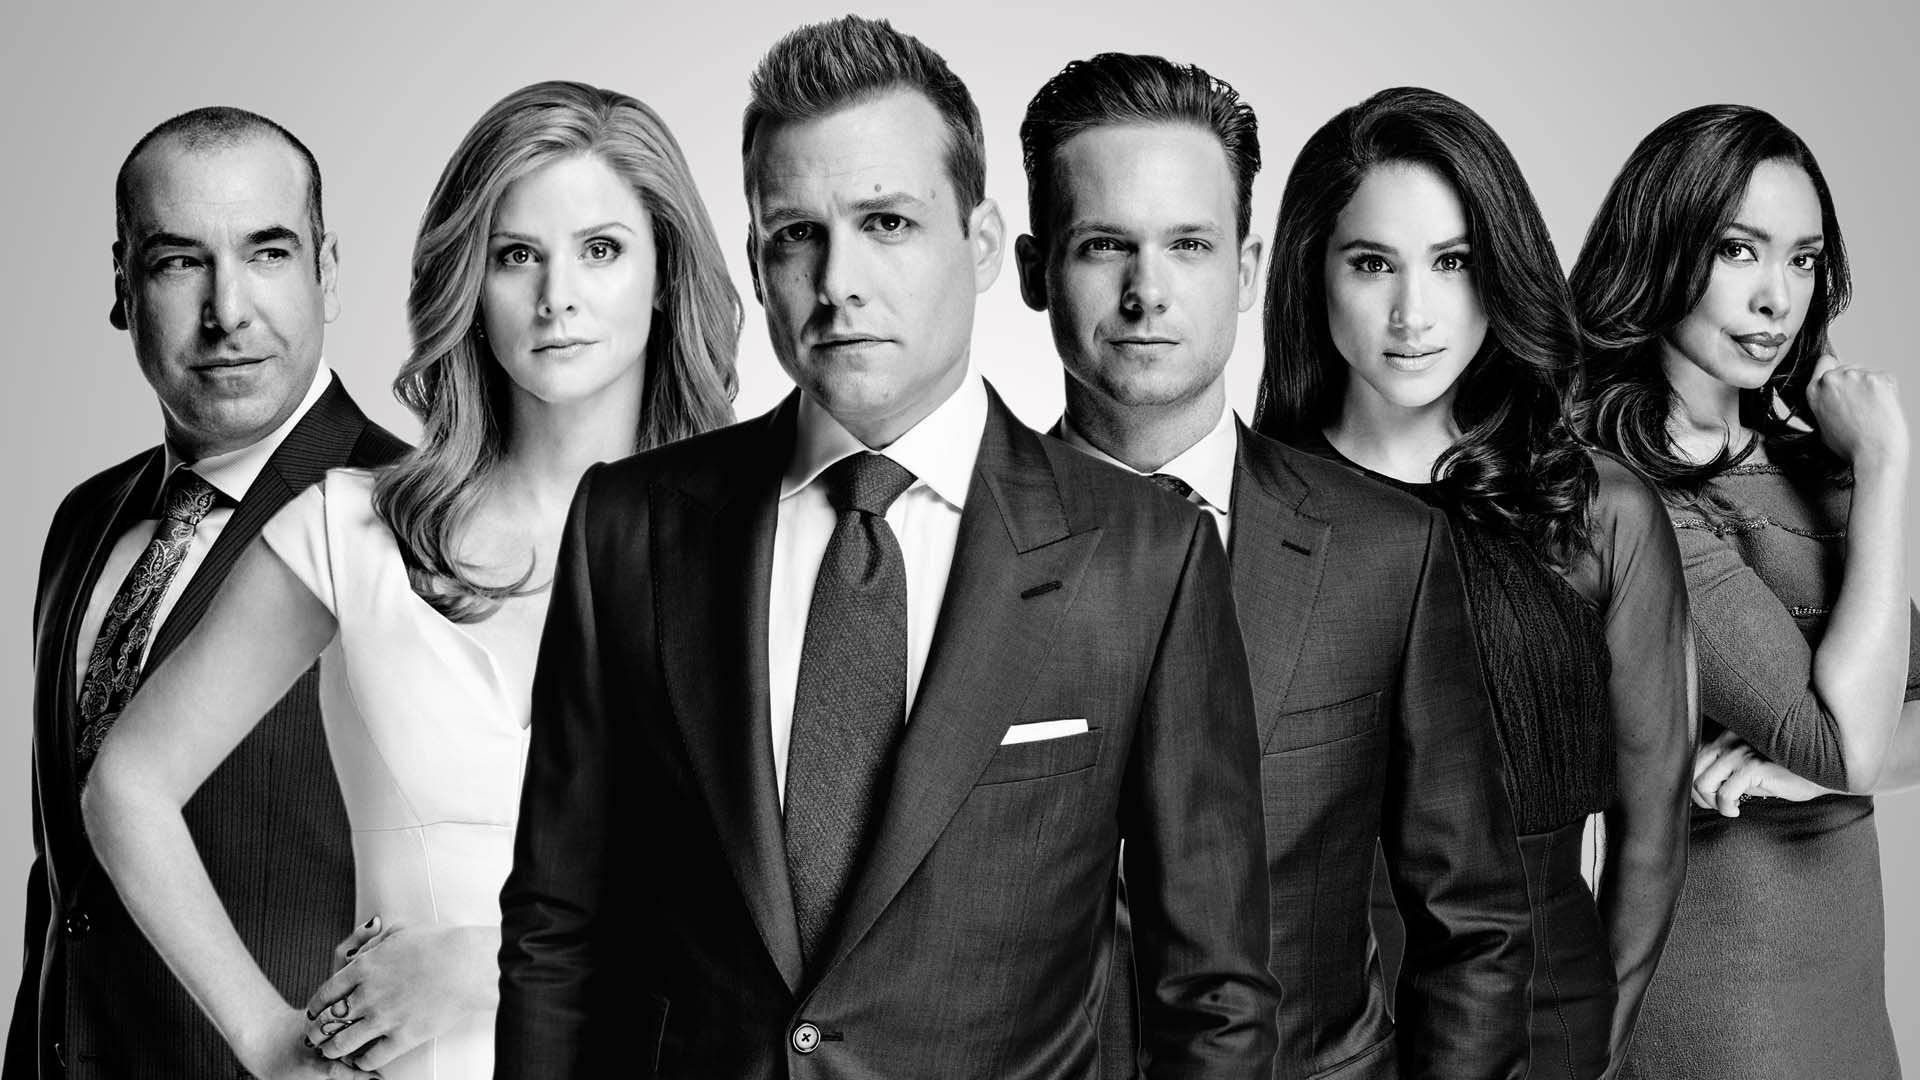 suits w garniturach mike ross Harvey specter Rachel zane Meghan markle